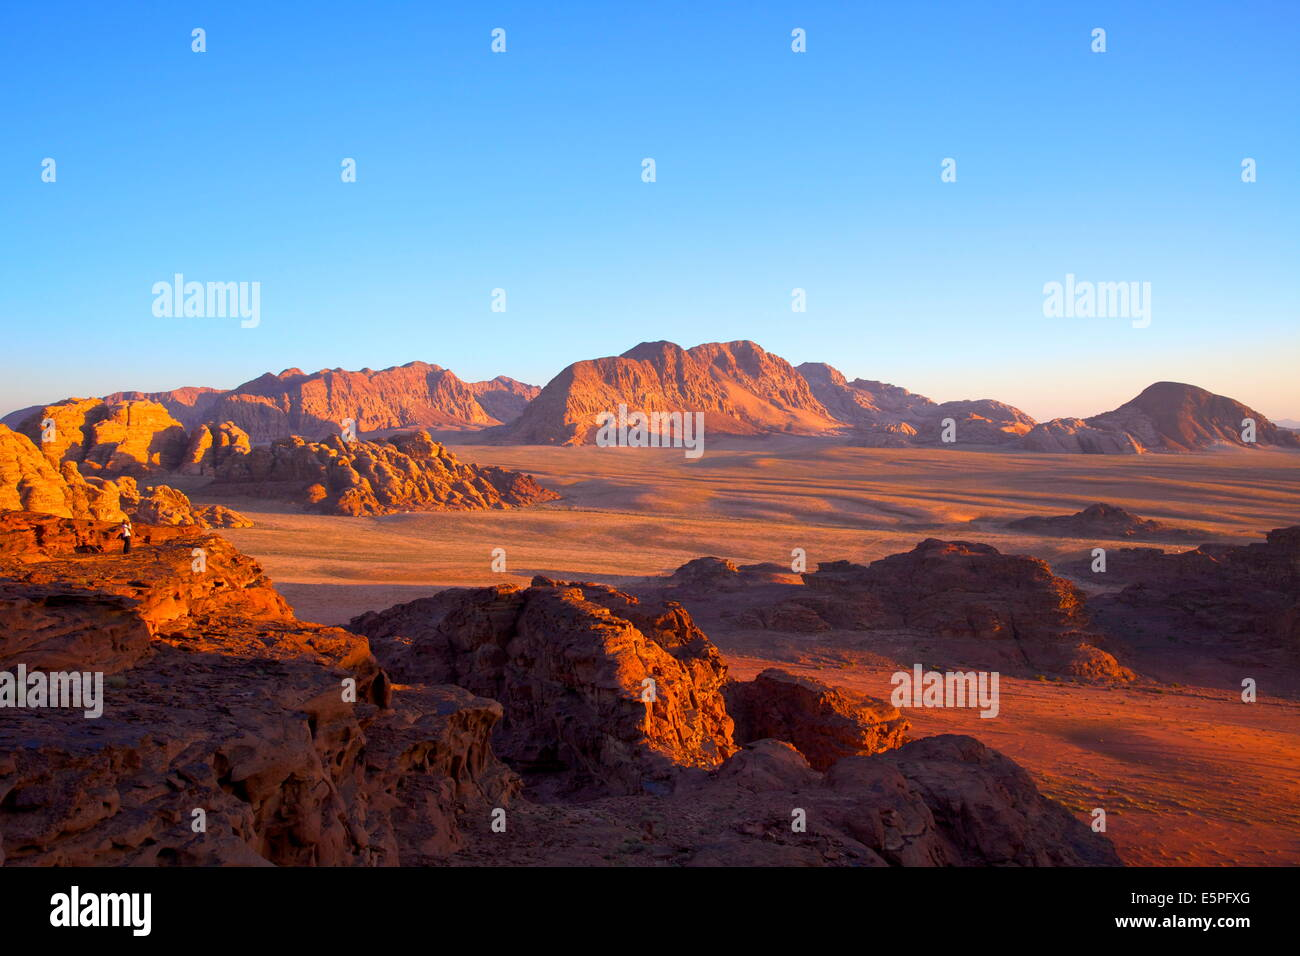 Tourist at Wadi Rum, Jordan, Middle East - Stock Image